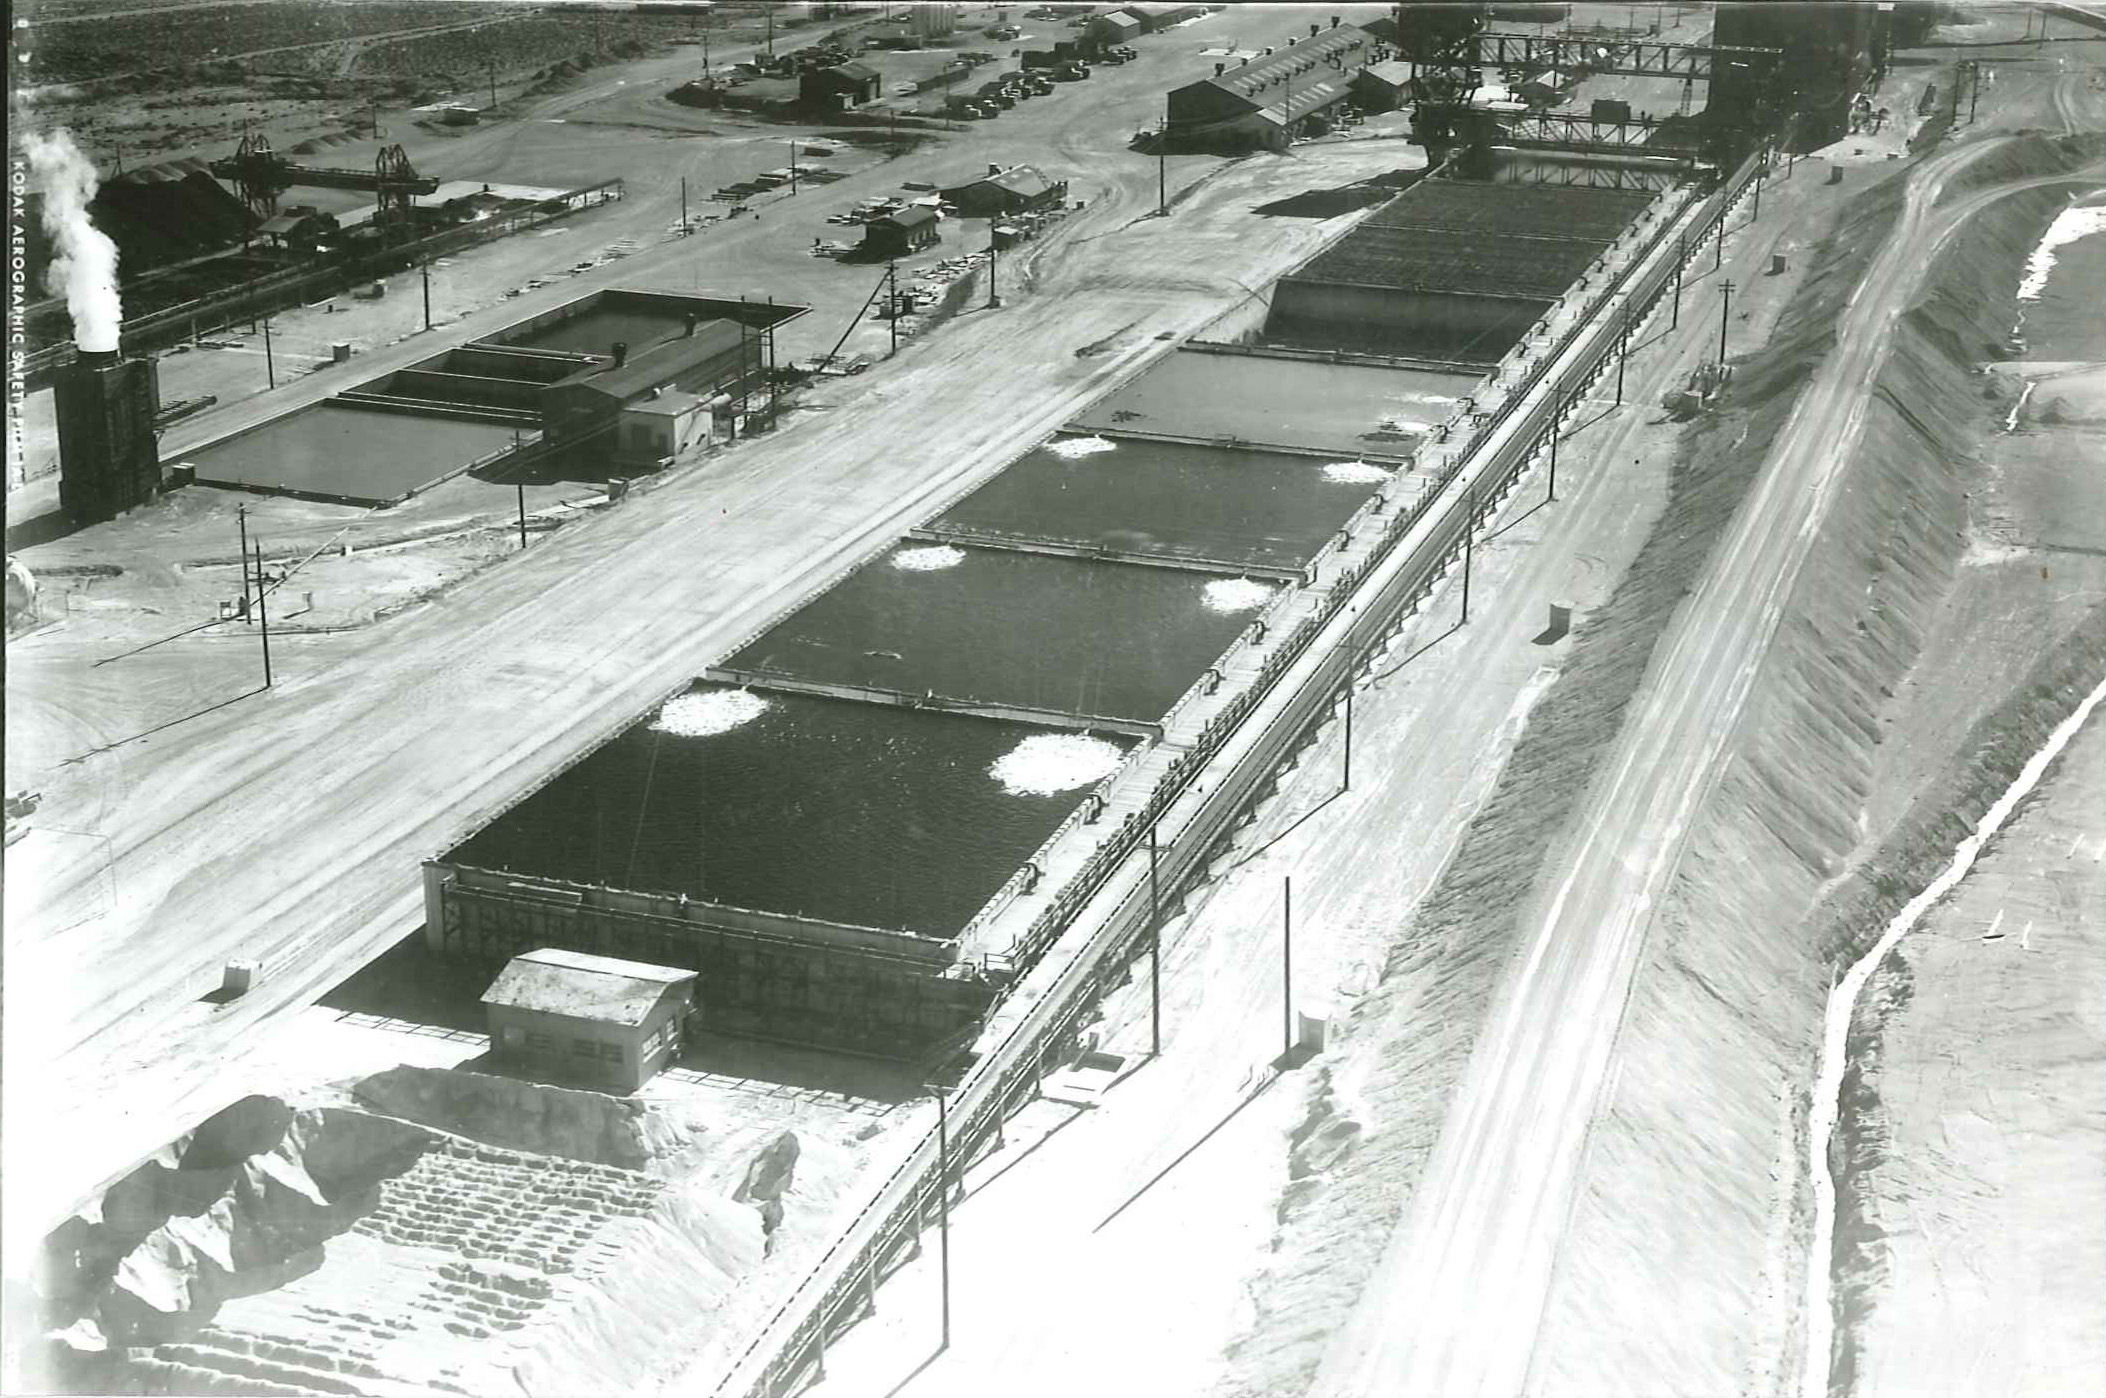 Photo of Process Area circa 1960